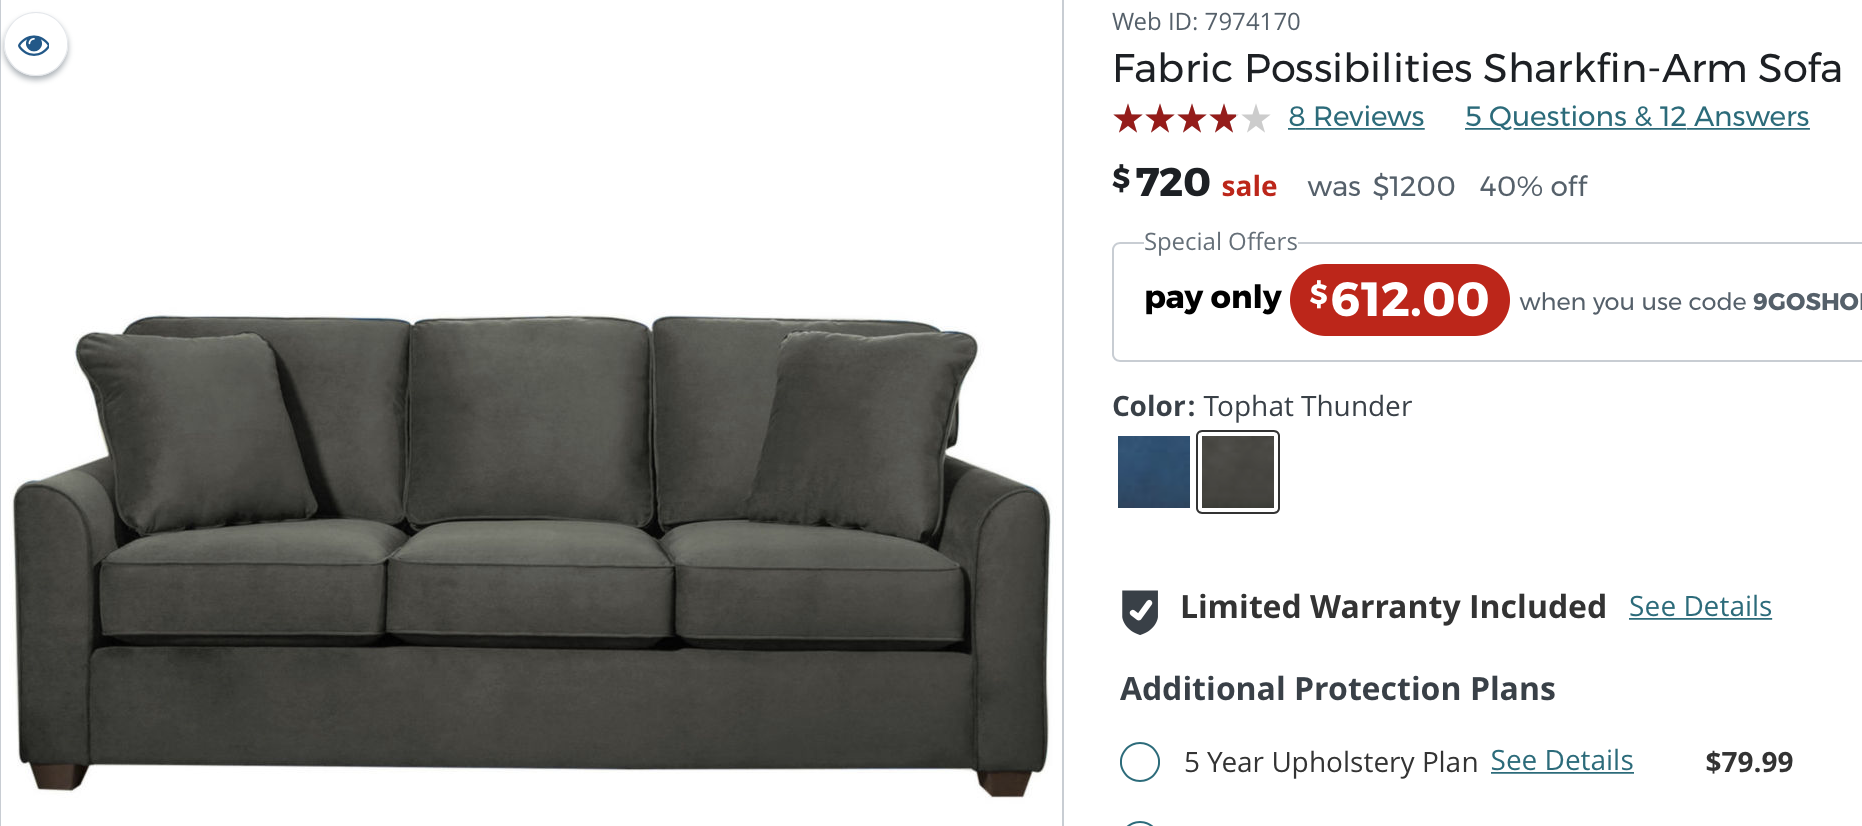 Https Www Jcpenney Com P Fabric Possibilities Sharkfin Arm Sofa Ppr5007218473 Ptmpltype Regular Deptid Dept20000011 How To Plan Fabric This Or That Questions